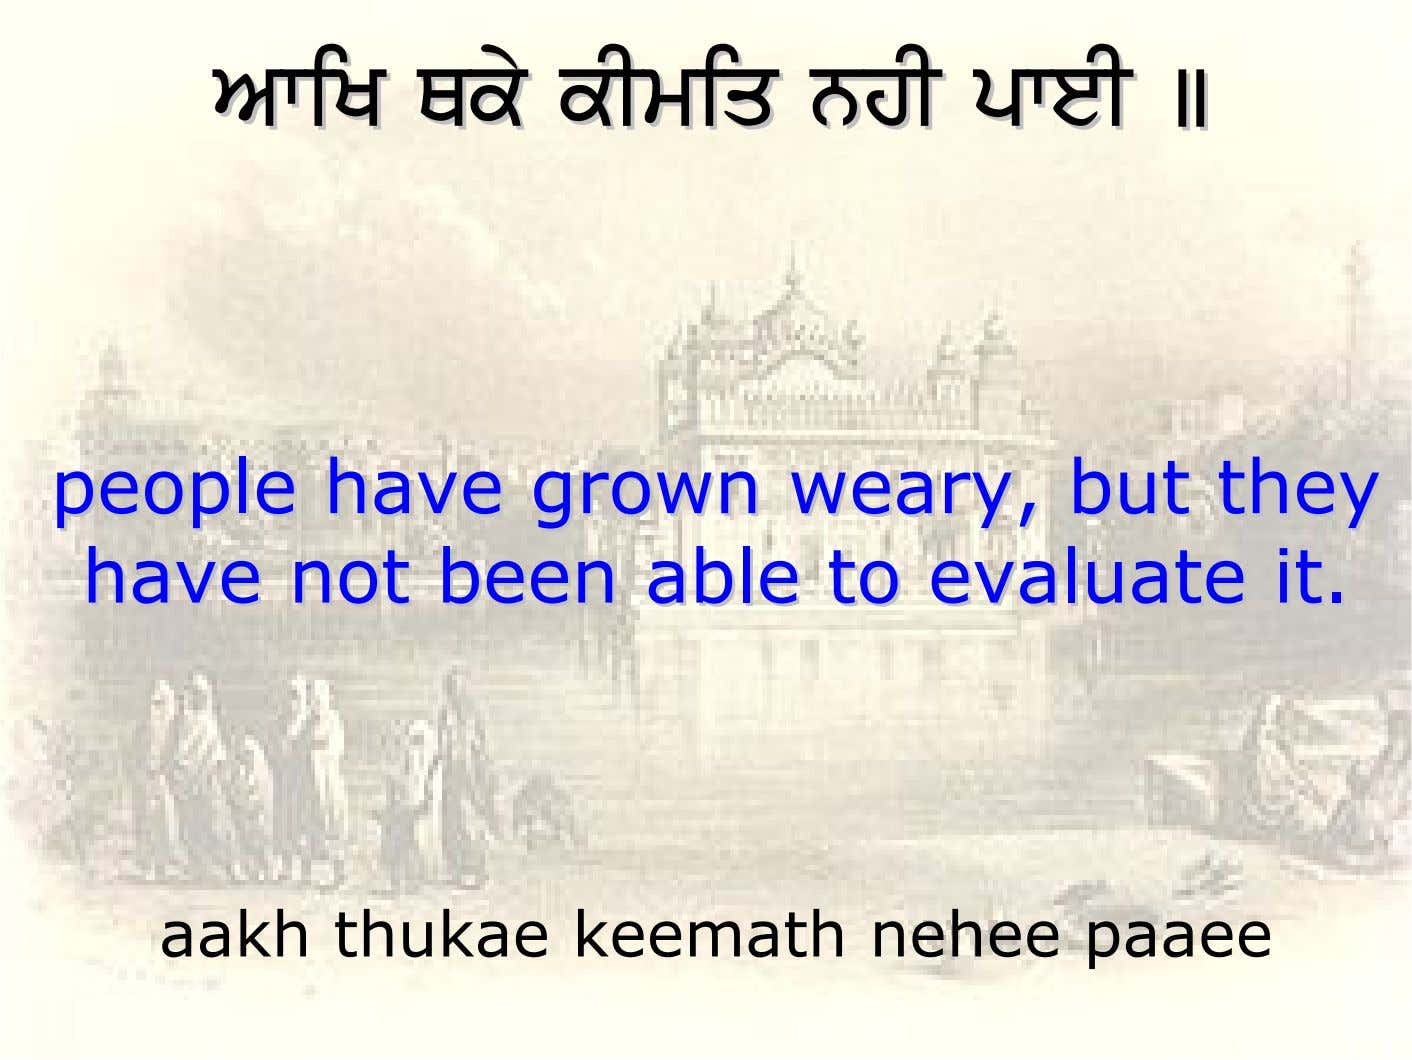 AwiKAwiK QkyQky kImiqkImiq nhInhI pweIpweI ]] peoplepeople havehave growngrown weary,weary, butbut theythey havehave